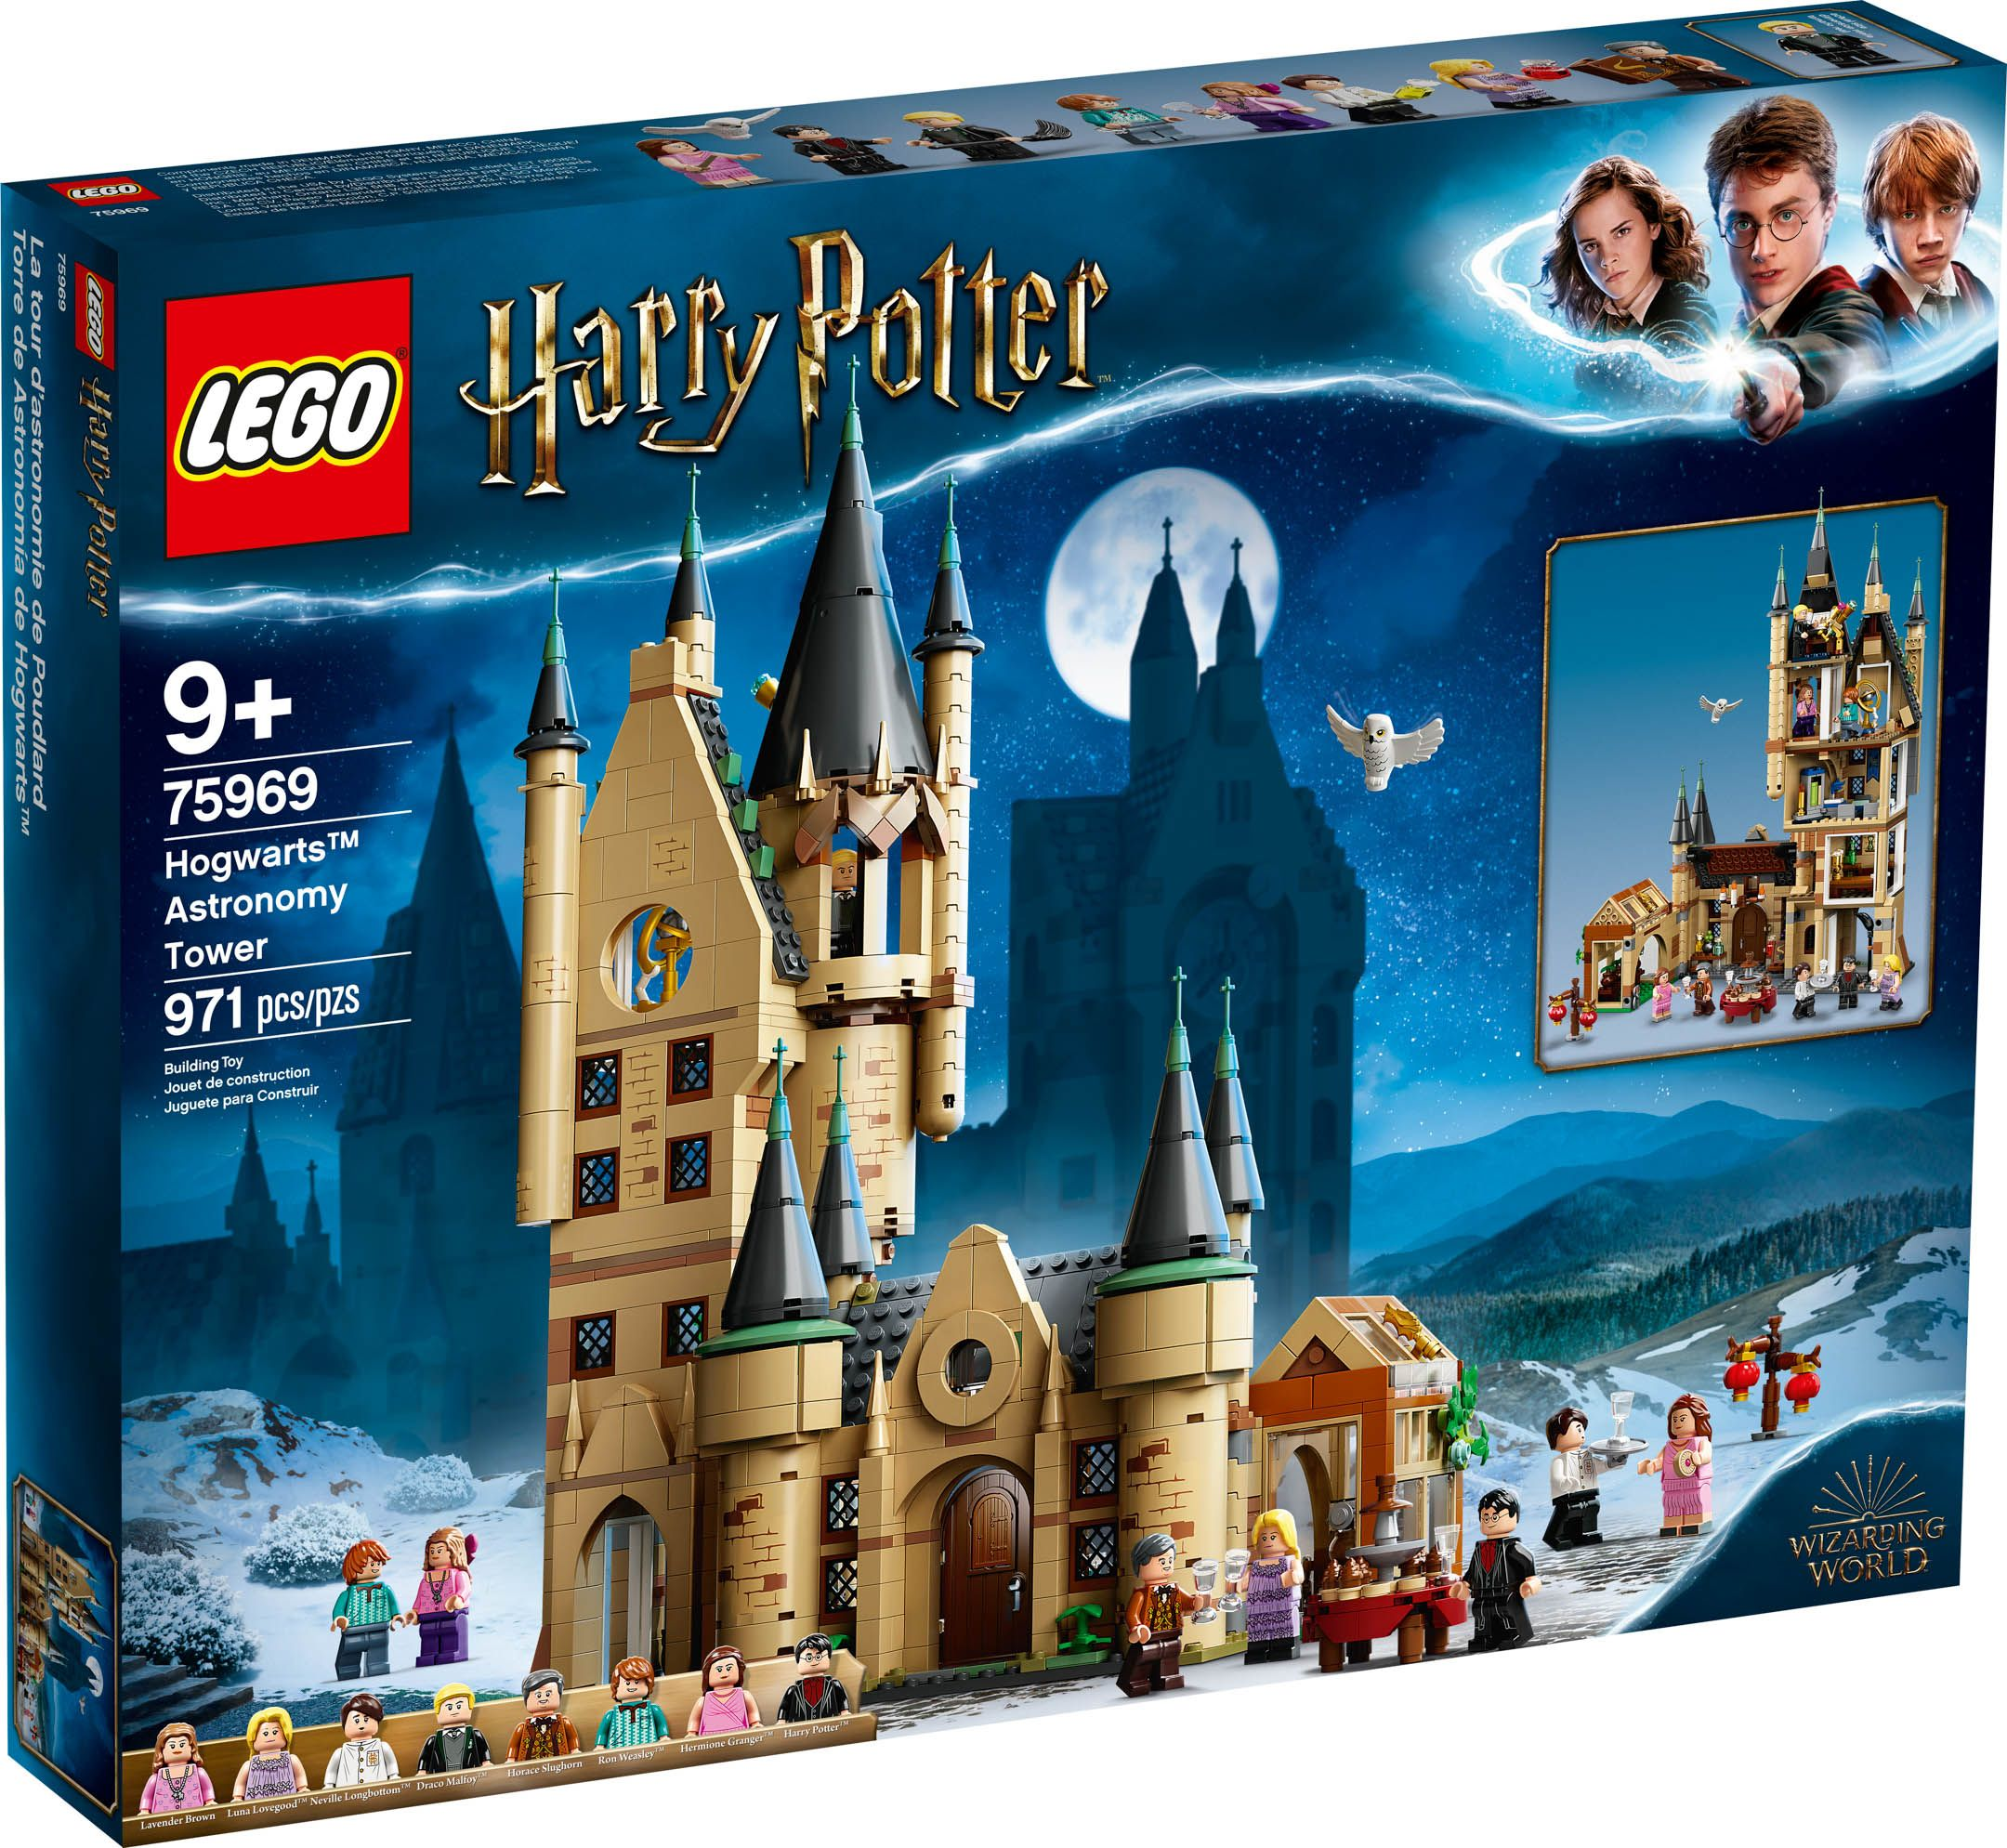 Six New Lego Harry Potter Sets Revealed For Summer 2020 With Centaurs Hogwarts Expansion Buildable Hedwig And More News The Brothers Brick Lego Hogwarts Harry Potter Lego Sets Harry Potter Set